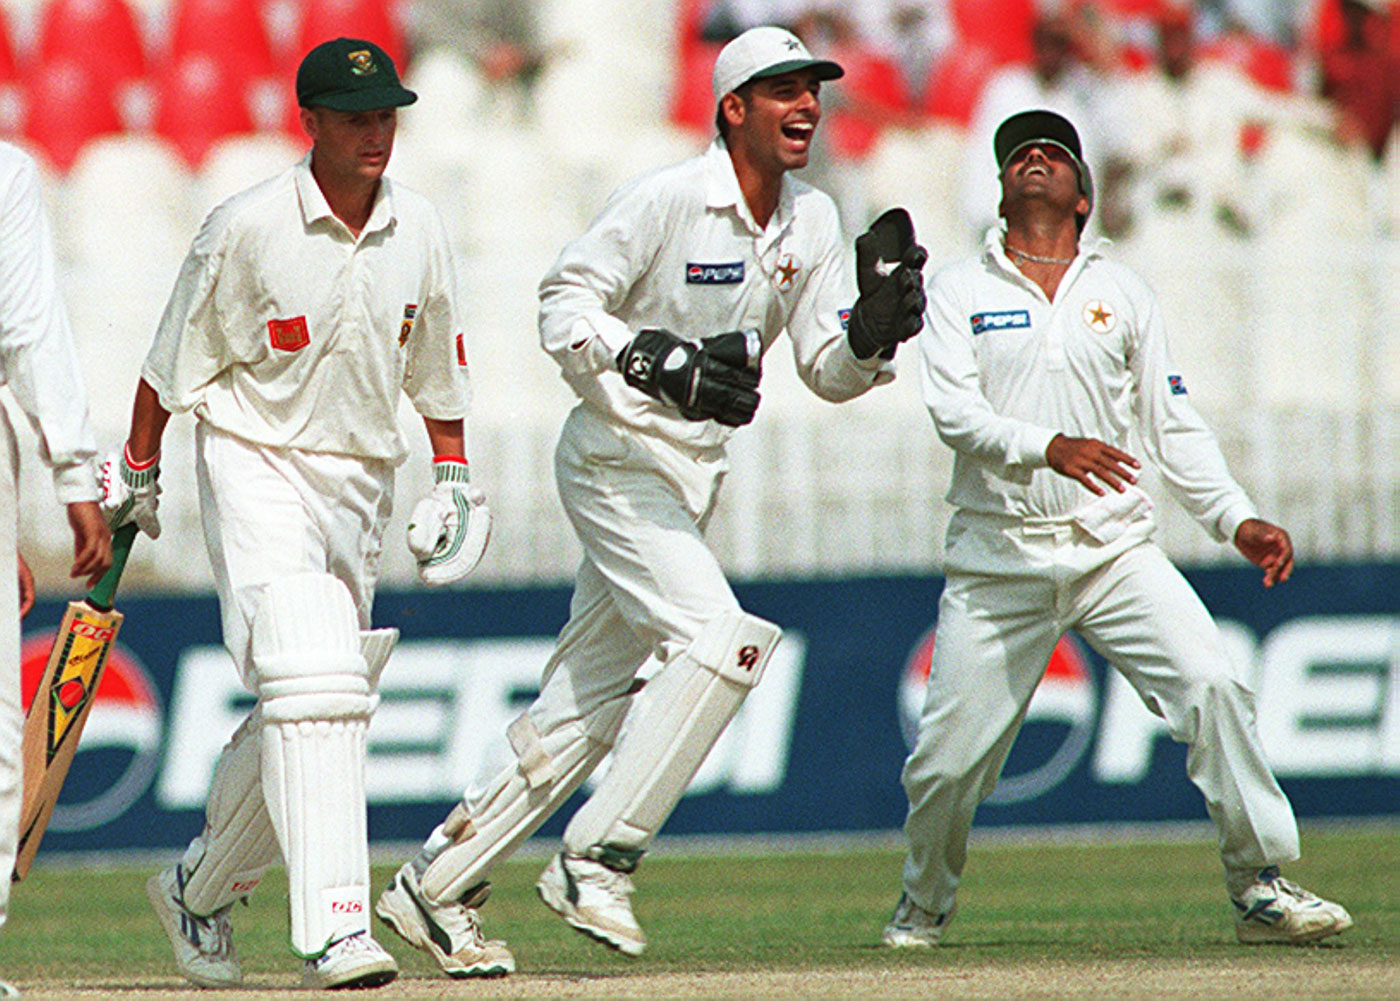 Wasim, as a substitute keeper for Moin Khan, celebrates the dismissal of Gary Kirsten in Rawalpindi, 1997-98